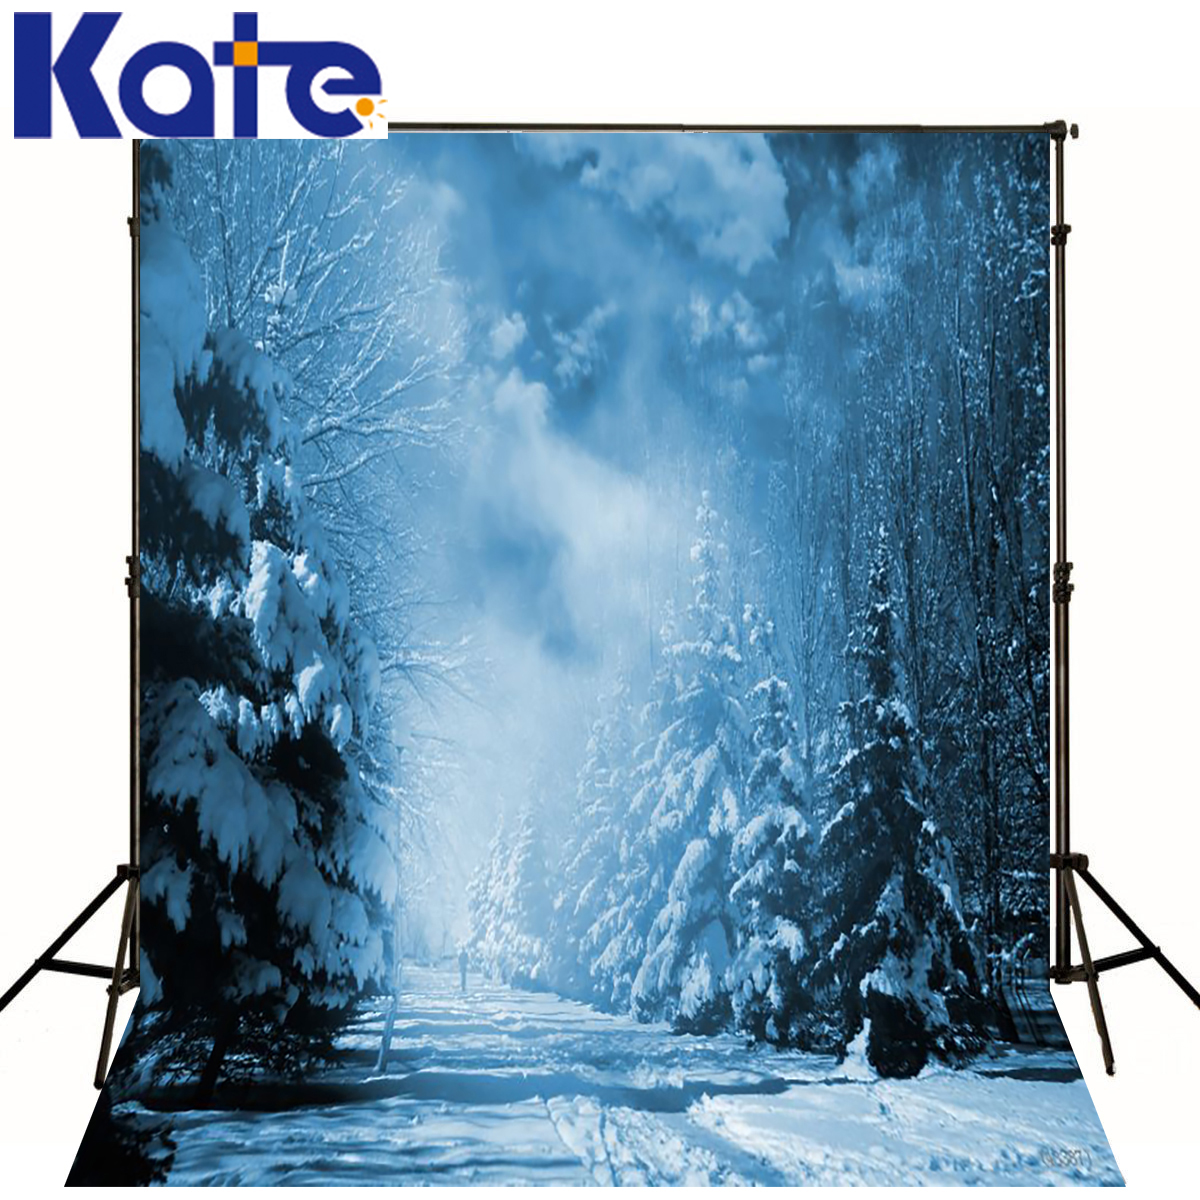 Kate Winter Background Ice Snow World Photography Backdrops Scenery Night Forest Backdrops For Photo Studio  kate photography backdrop winter snow tree castle scenery photography background lighting spot dream backdrops studio